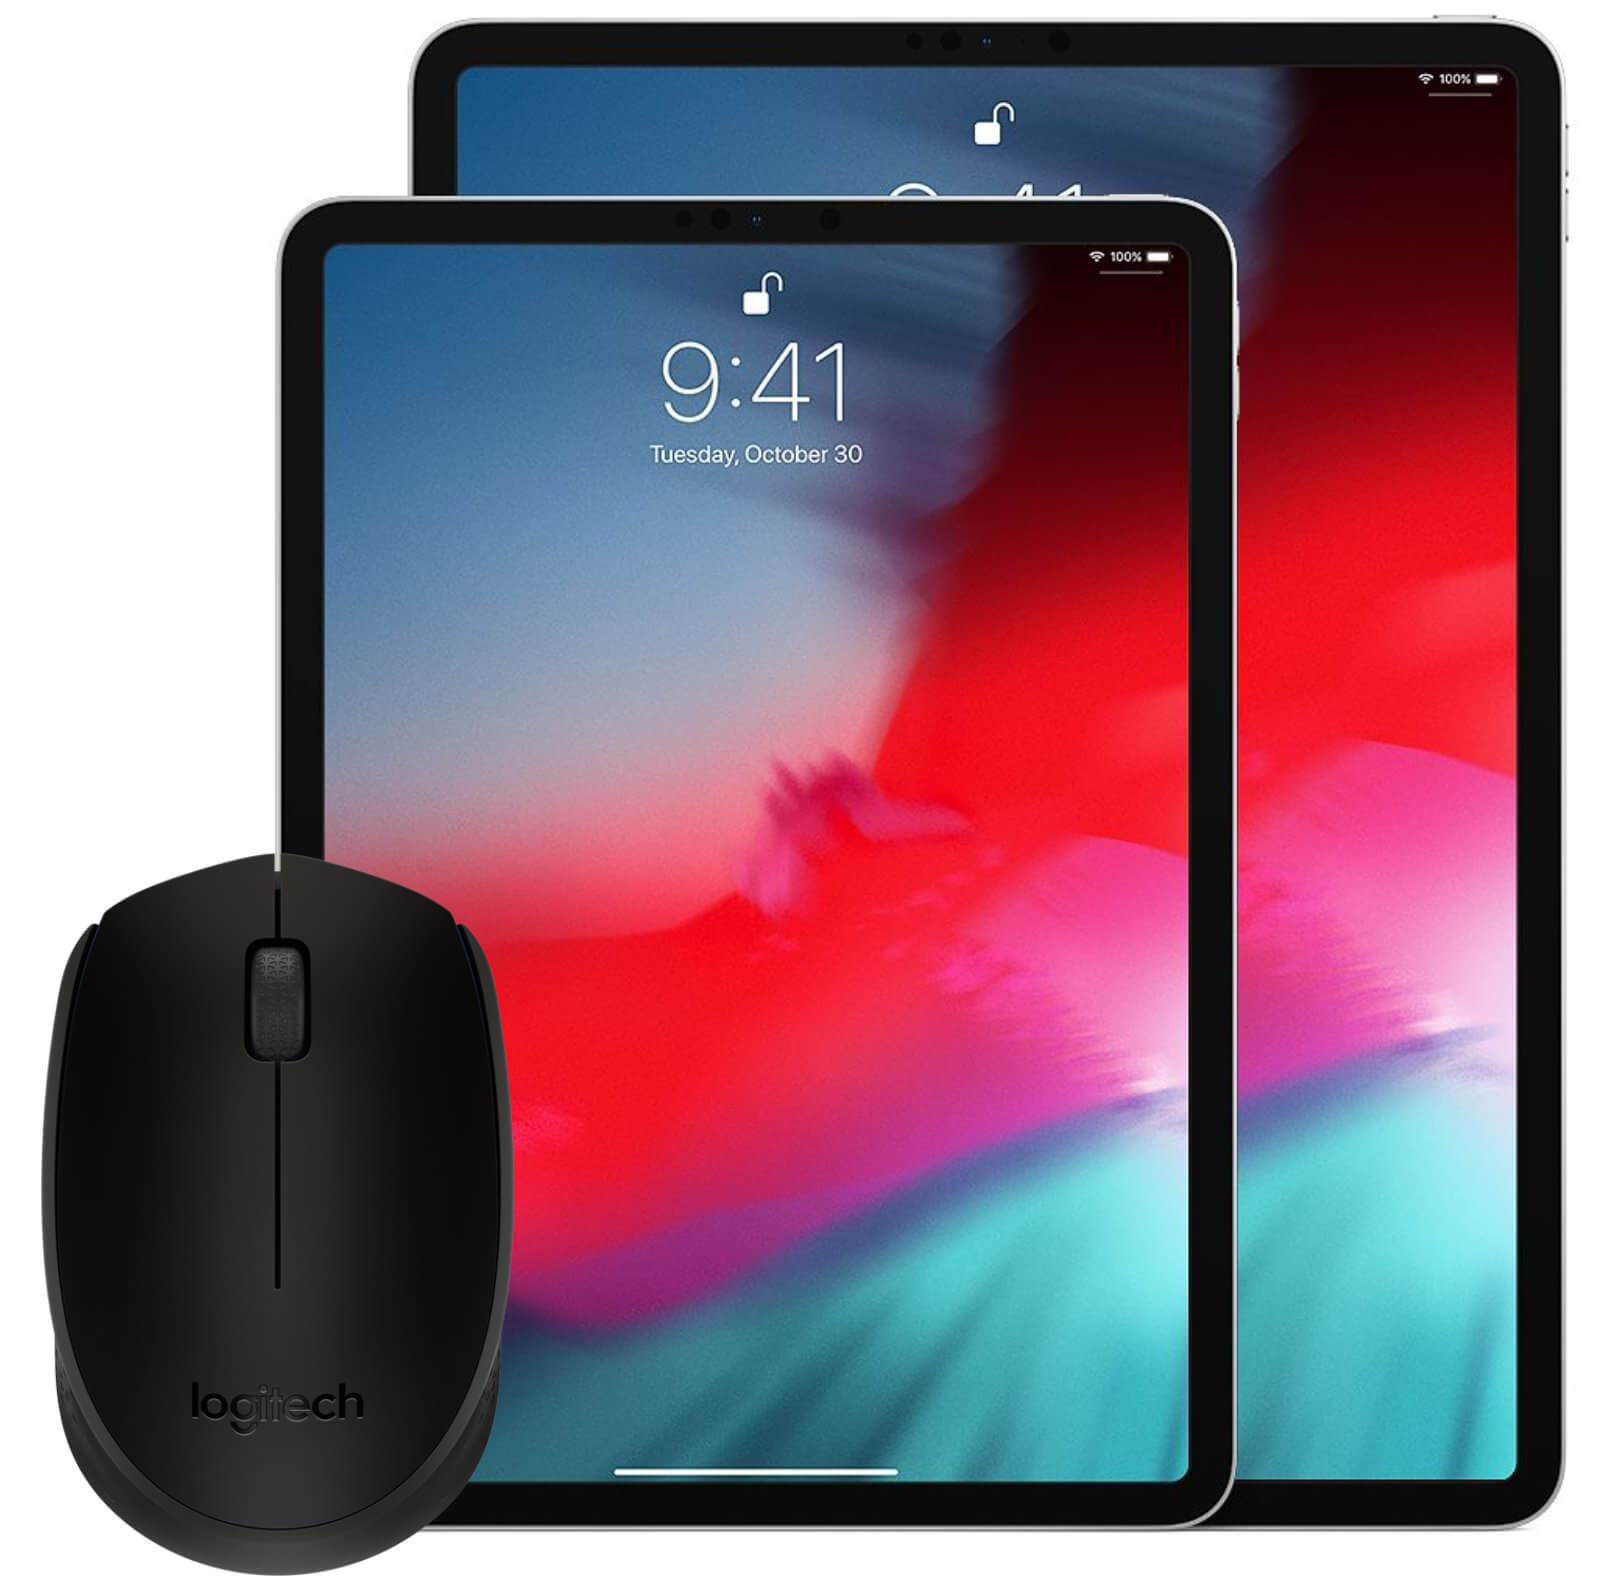 iOS 13 Rumored to Bring Mouse Support to the iPad